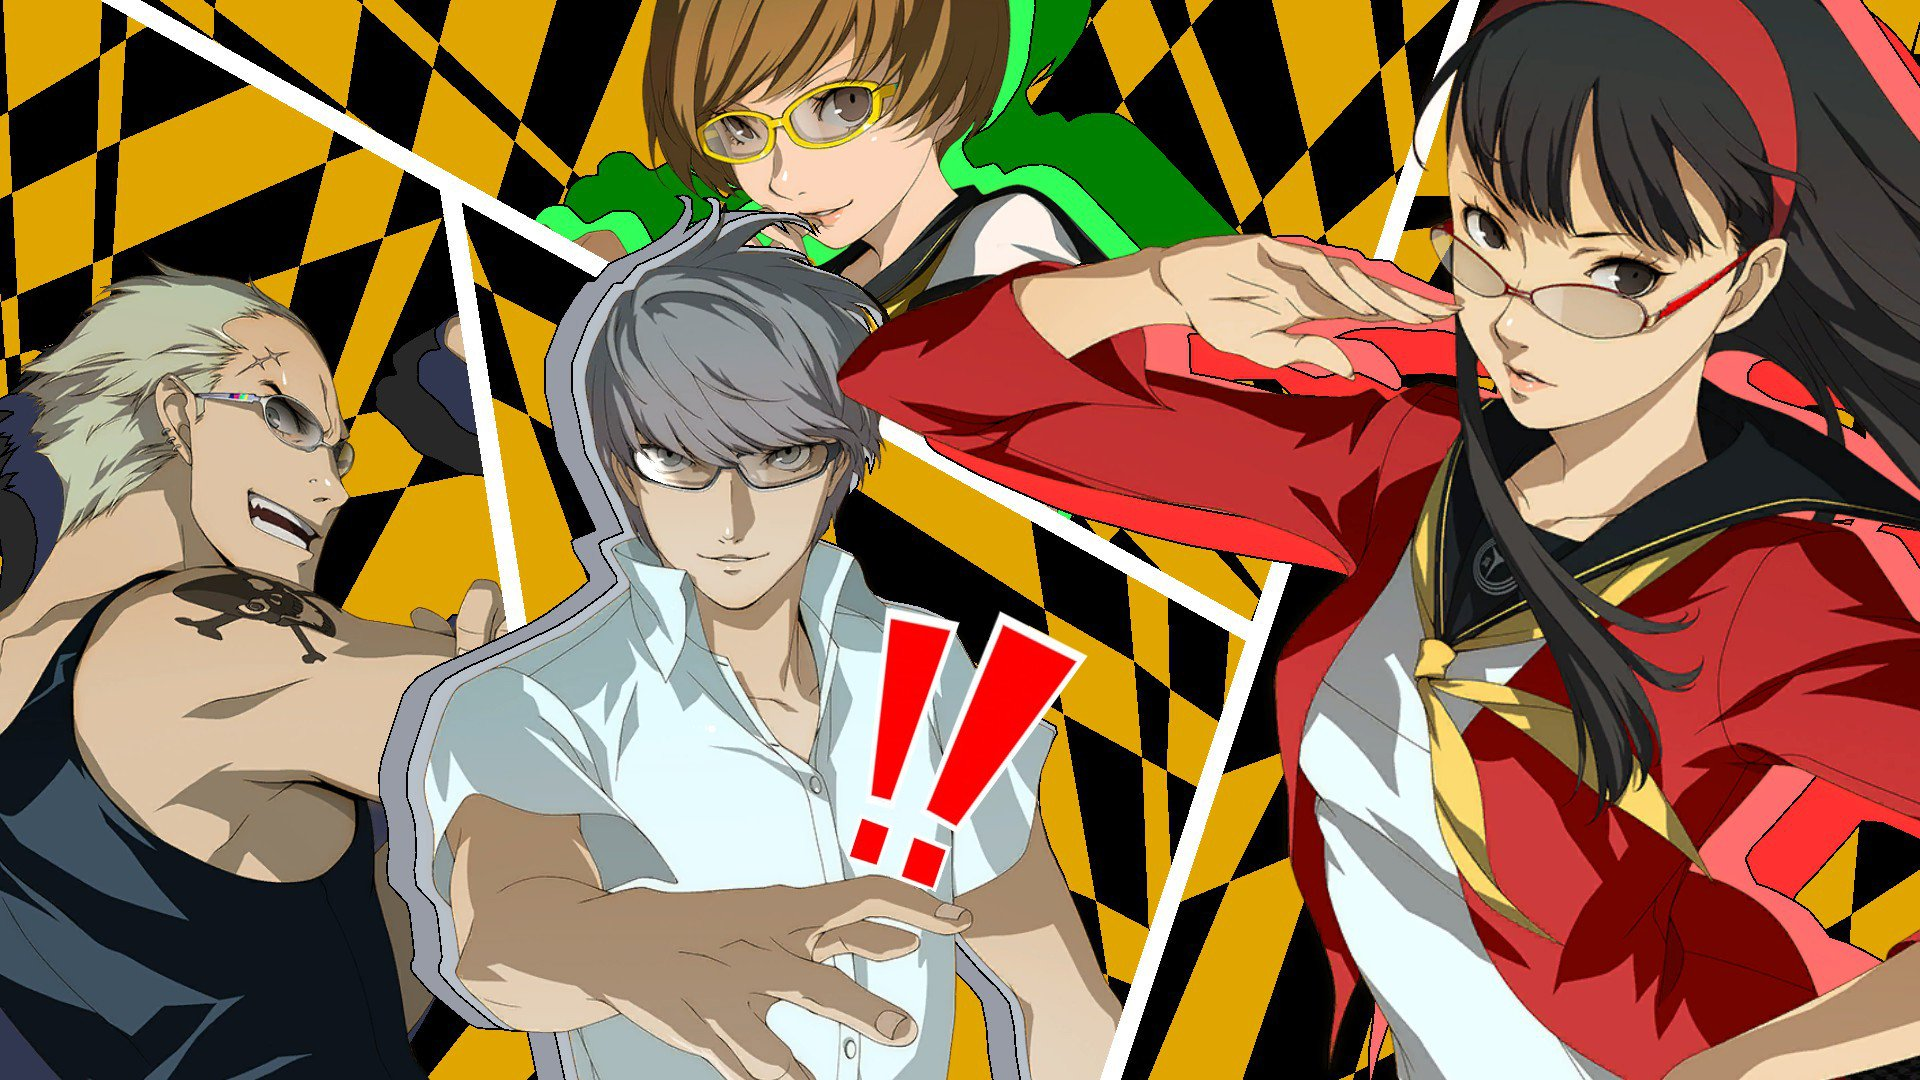 Atlus Drops Persona 4 Golden Patch 1.1 With Major Fixes And Cutscene Optimization